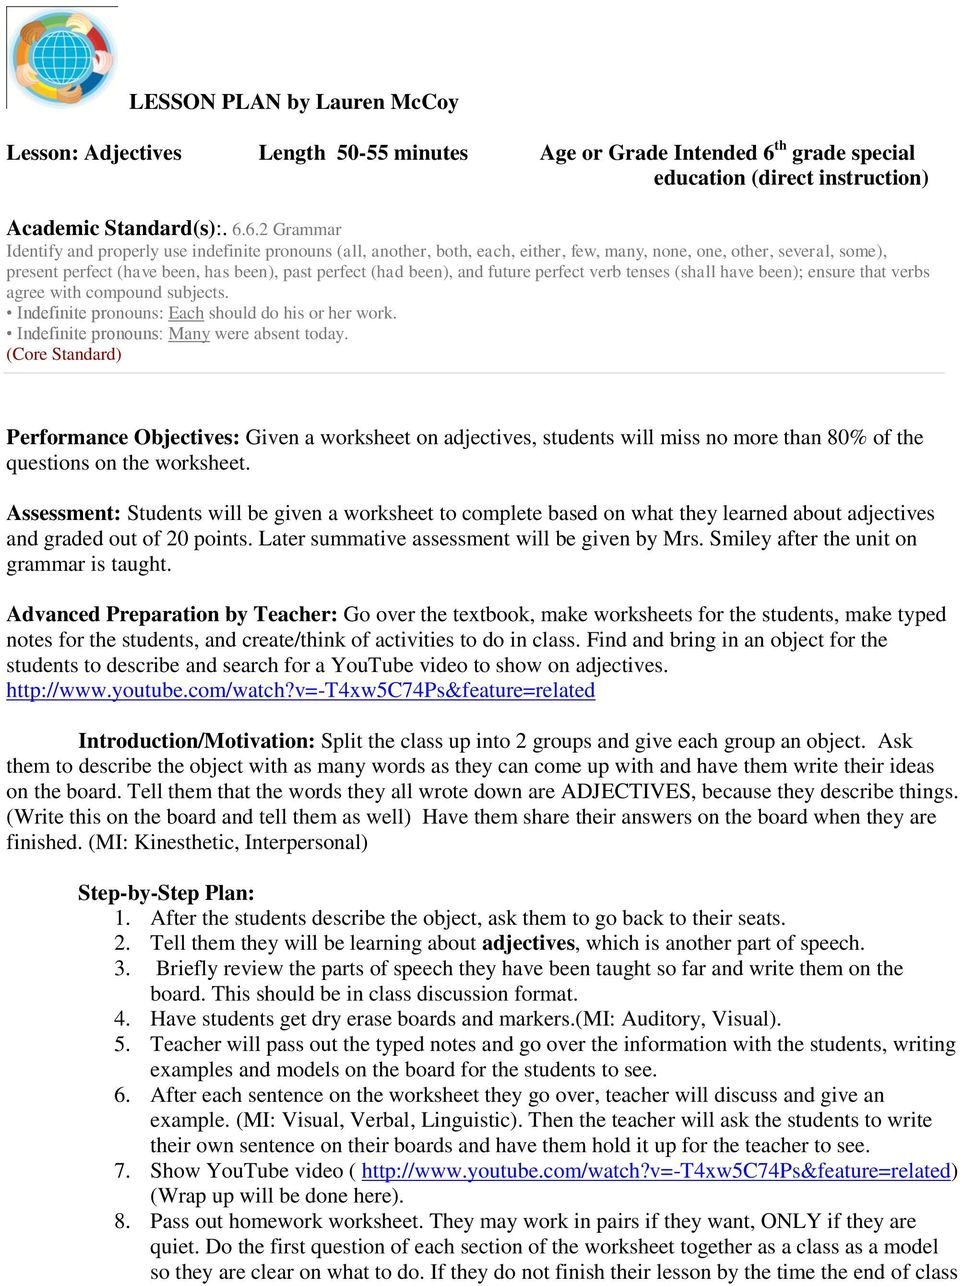 hight resolution of Lesson: Adjectives Length minutes Age or Grade Intended 6 th grade special  education (direct instruction) - PDF Free Download